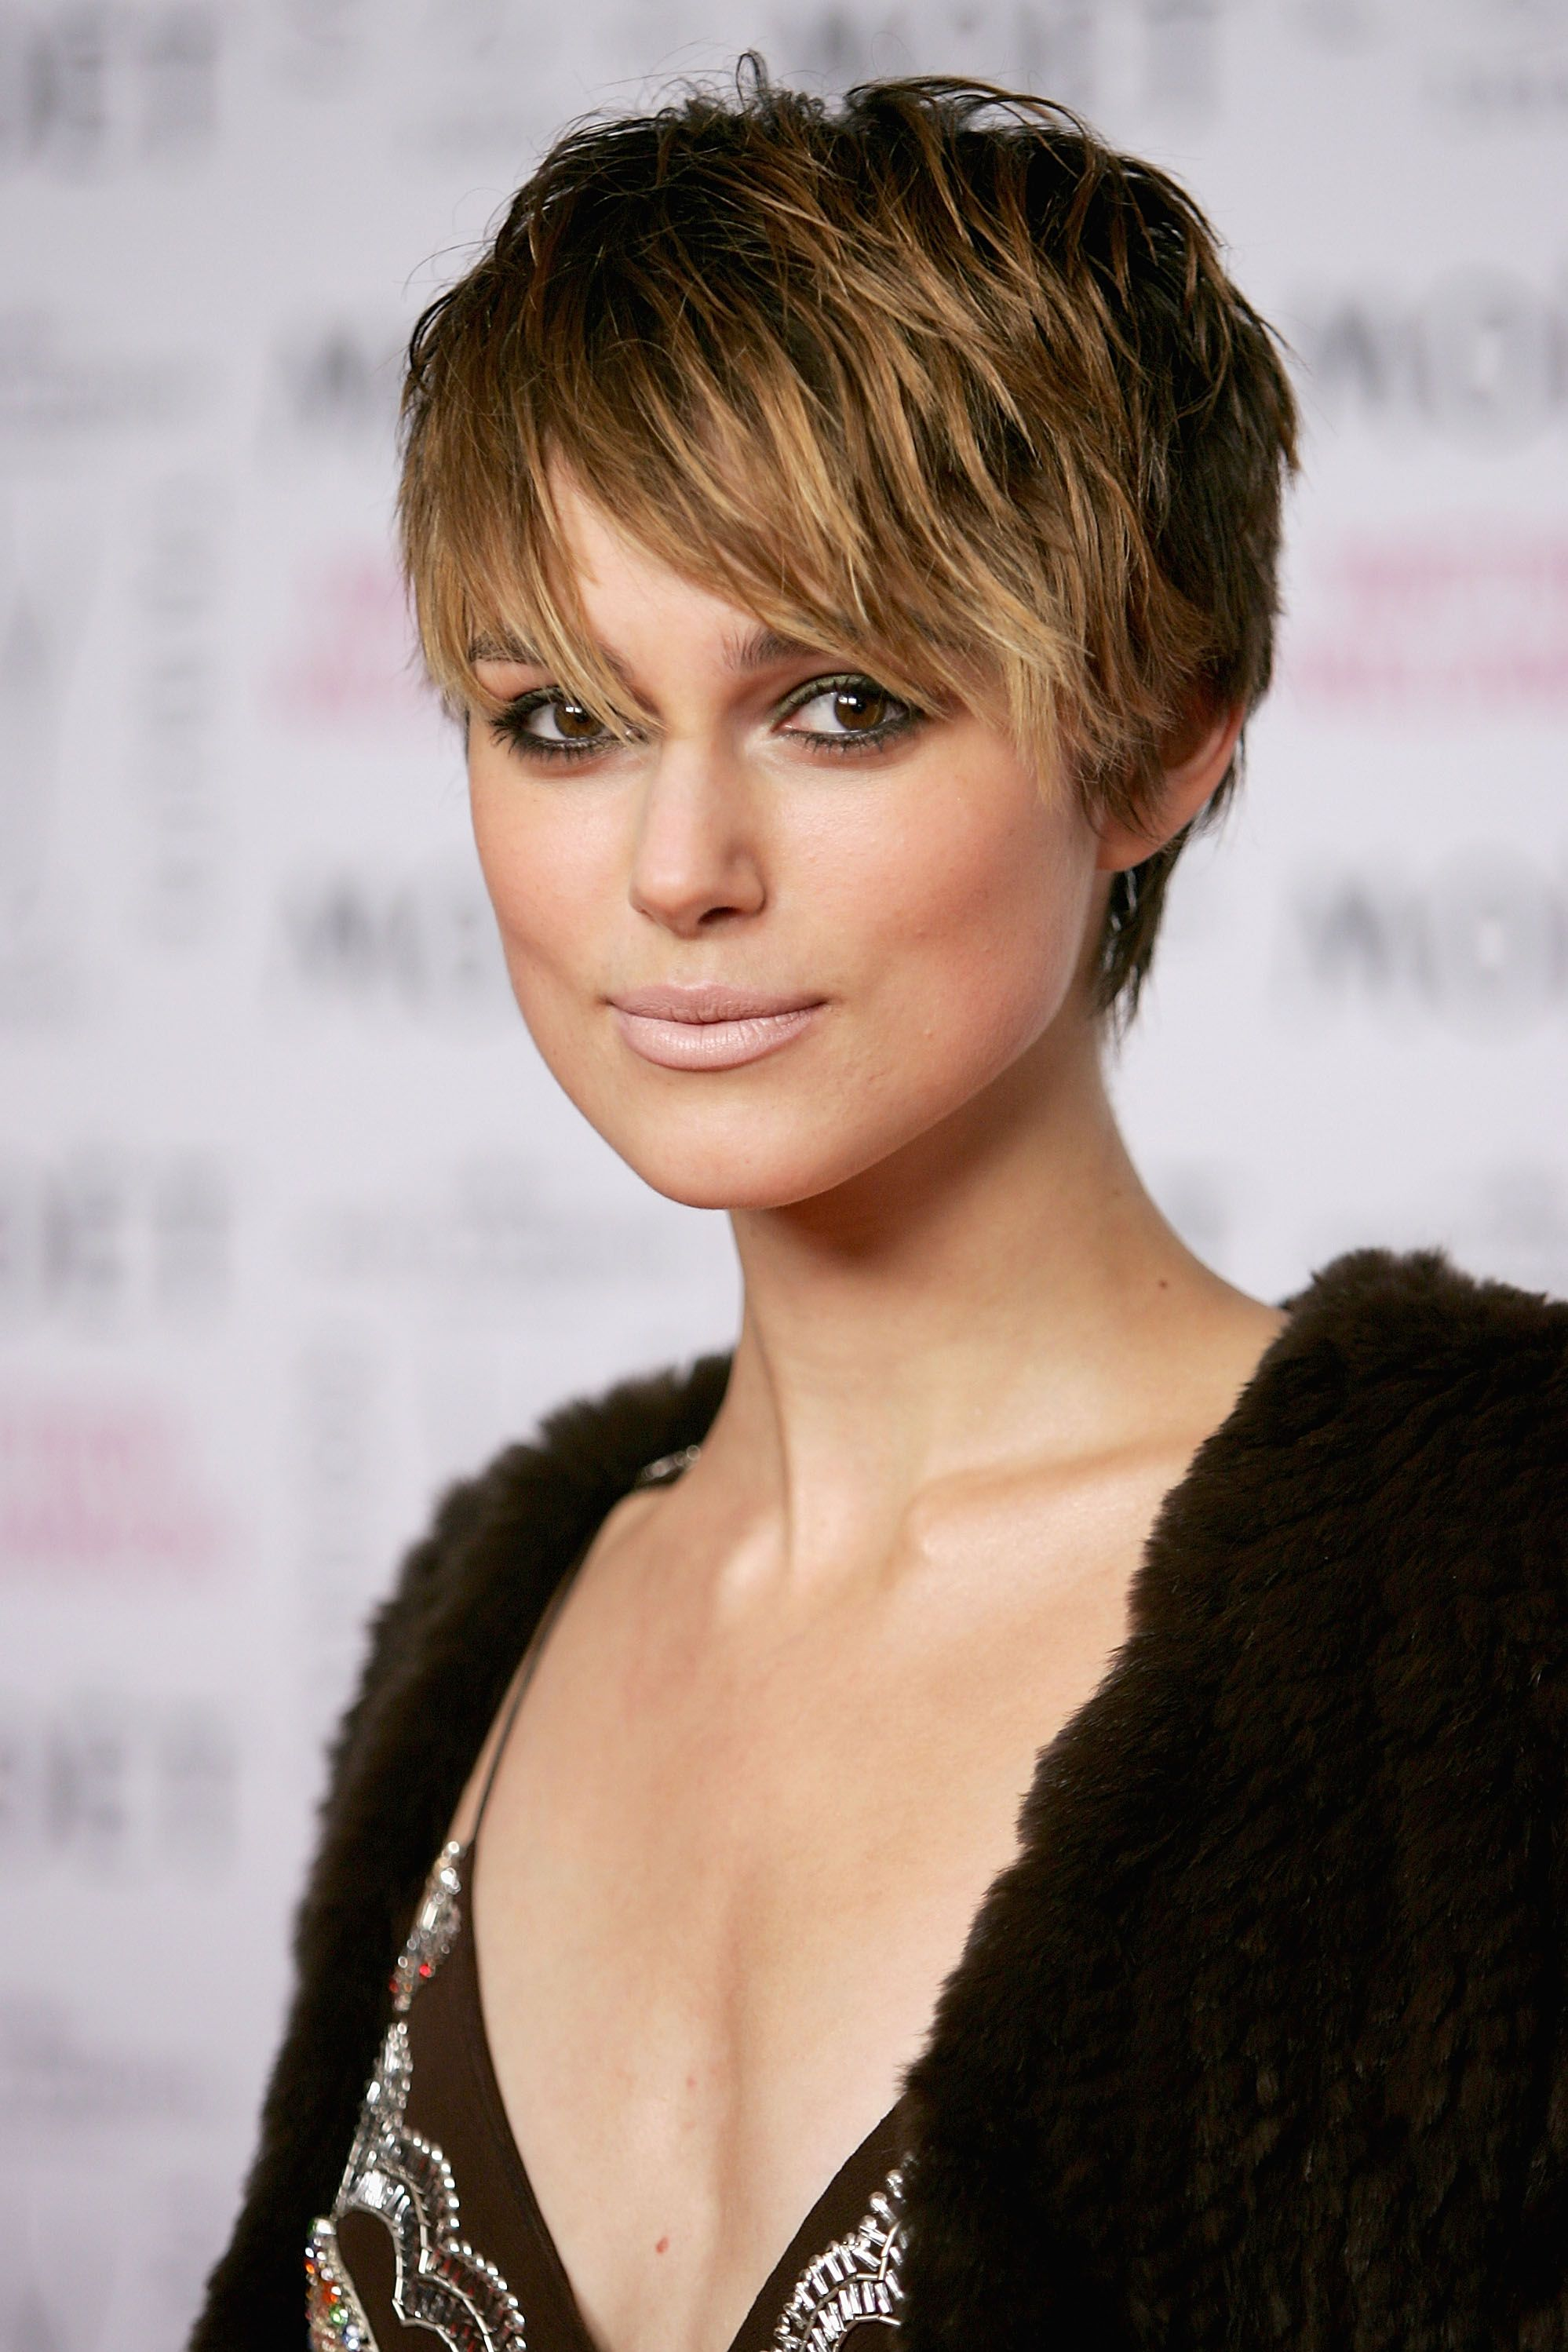 100+ Short Hairstyles and Haircuts You'll Want to Wear All Summer Long